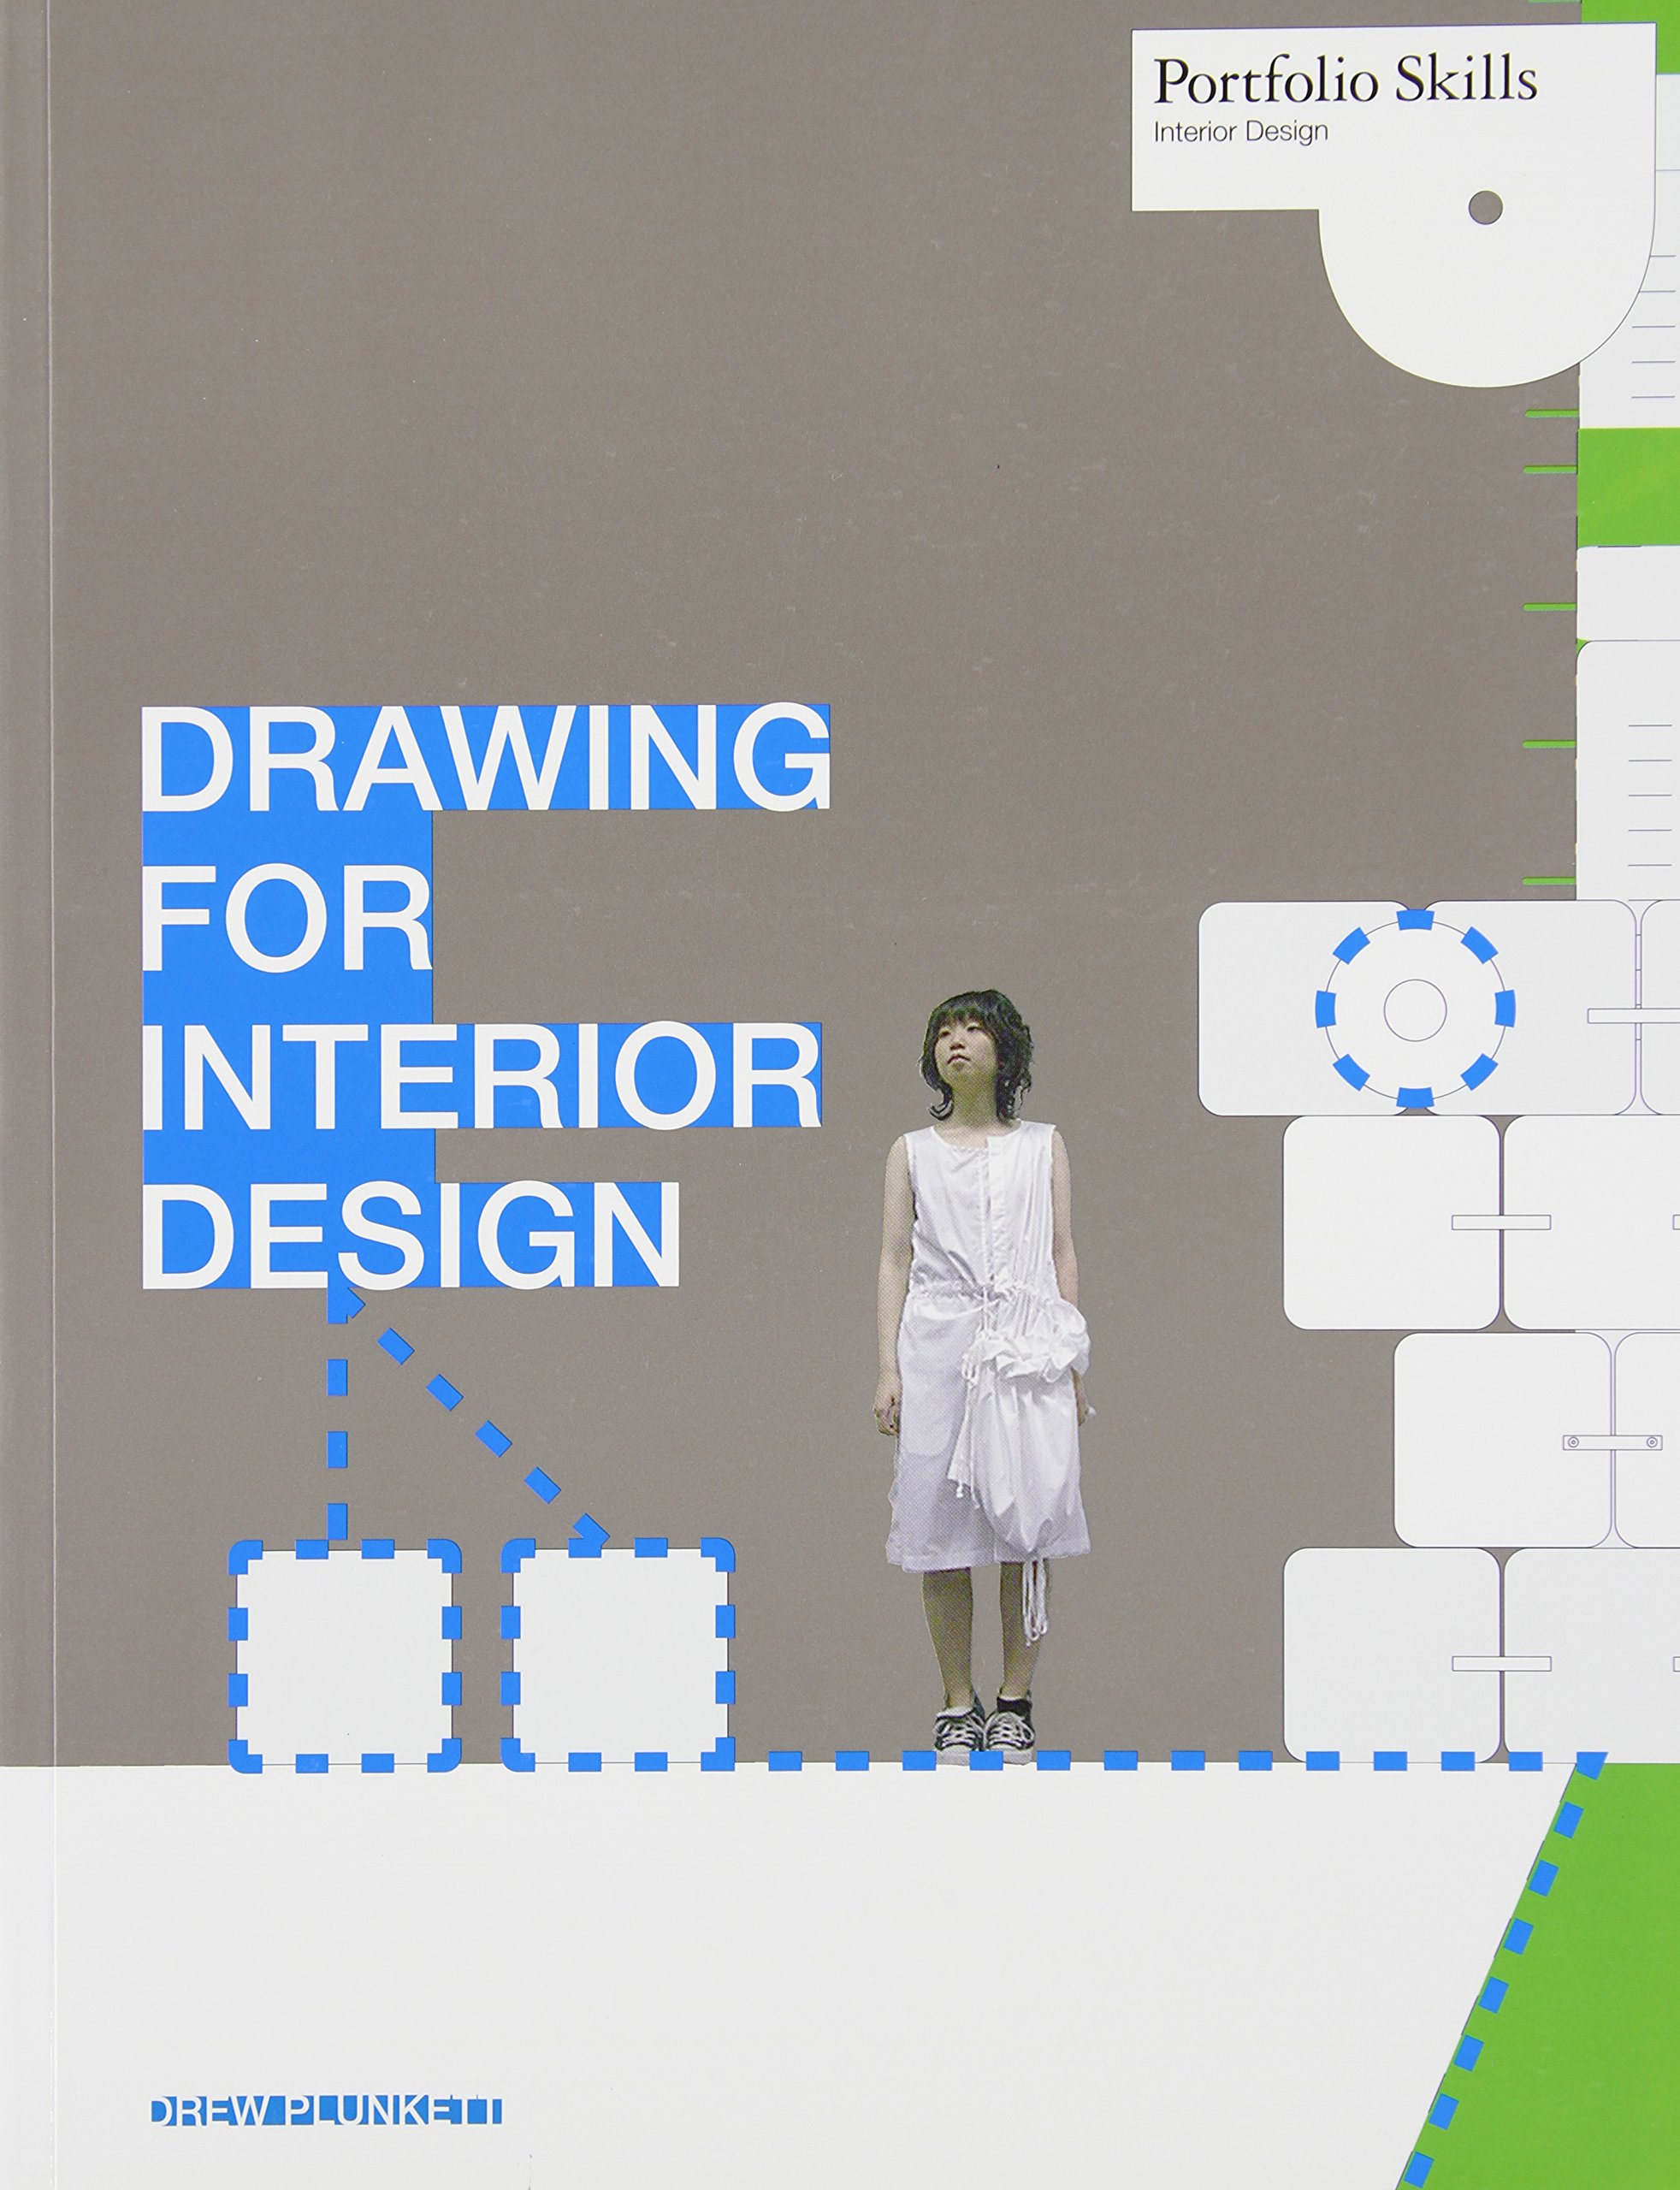 Amazon Com Drawing For Interior Design Portfolio Skills Interior